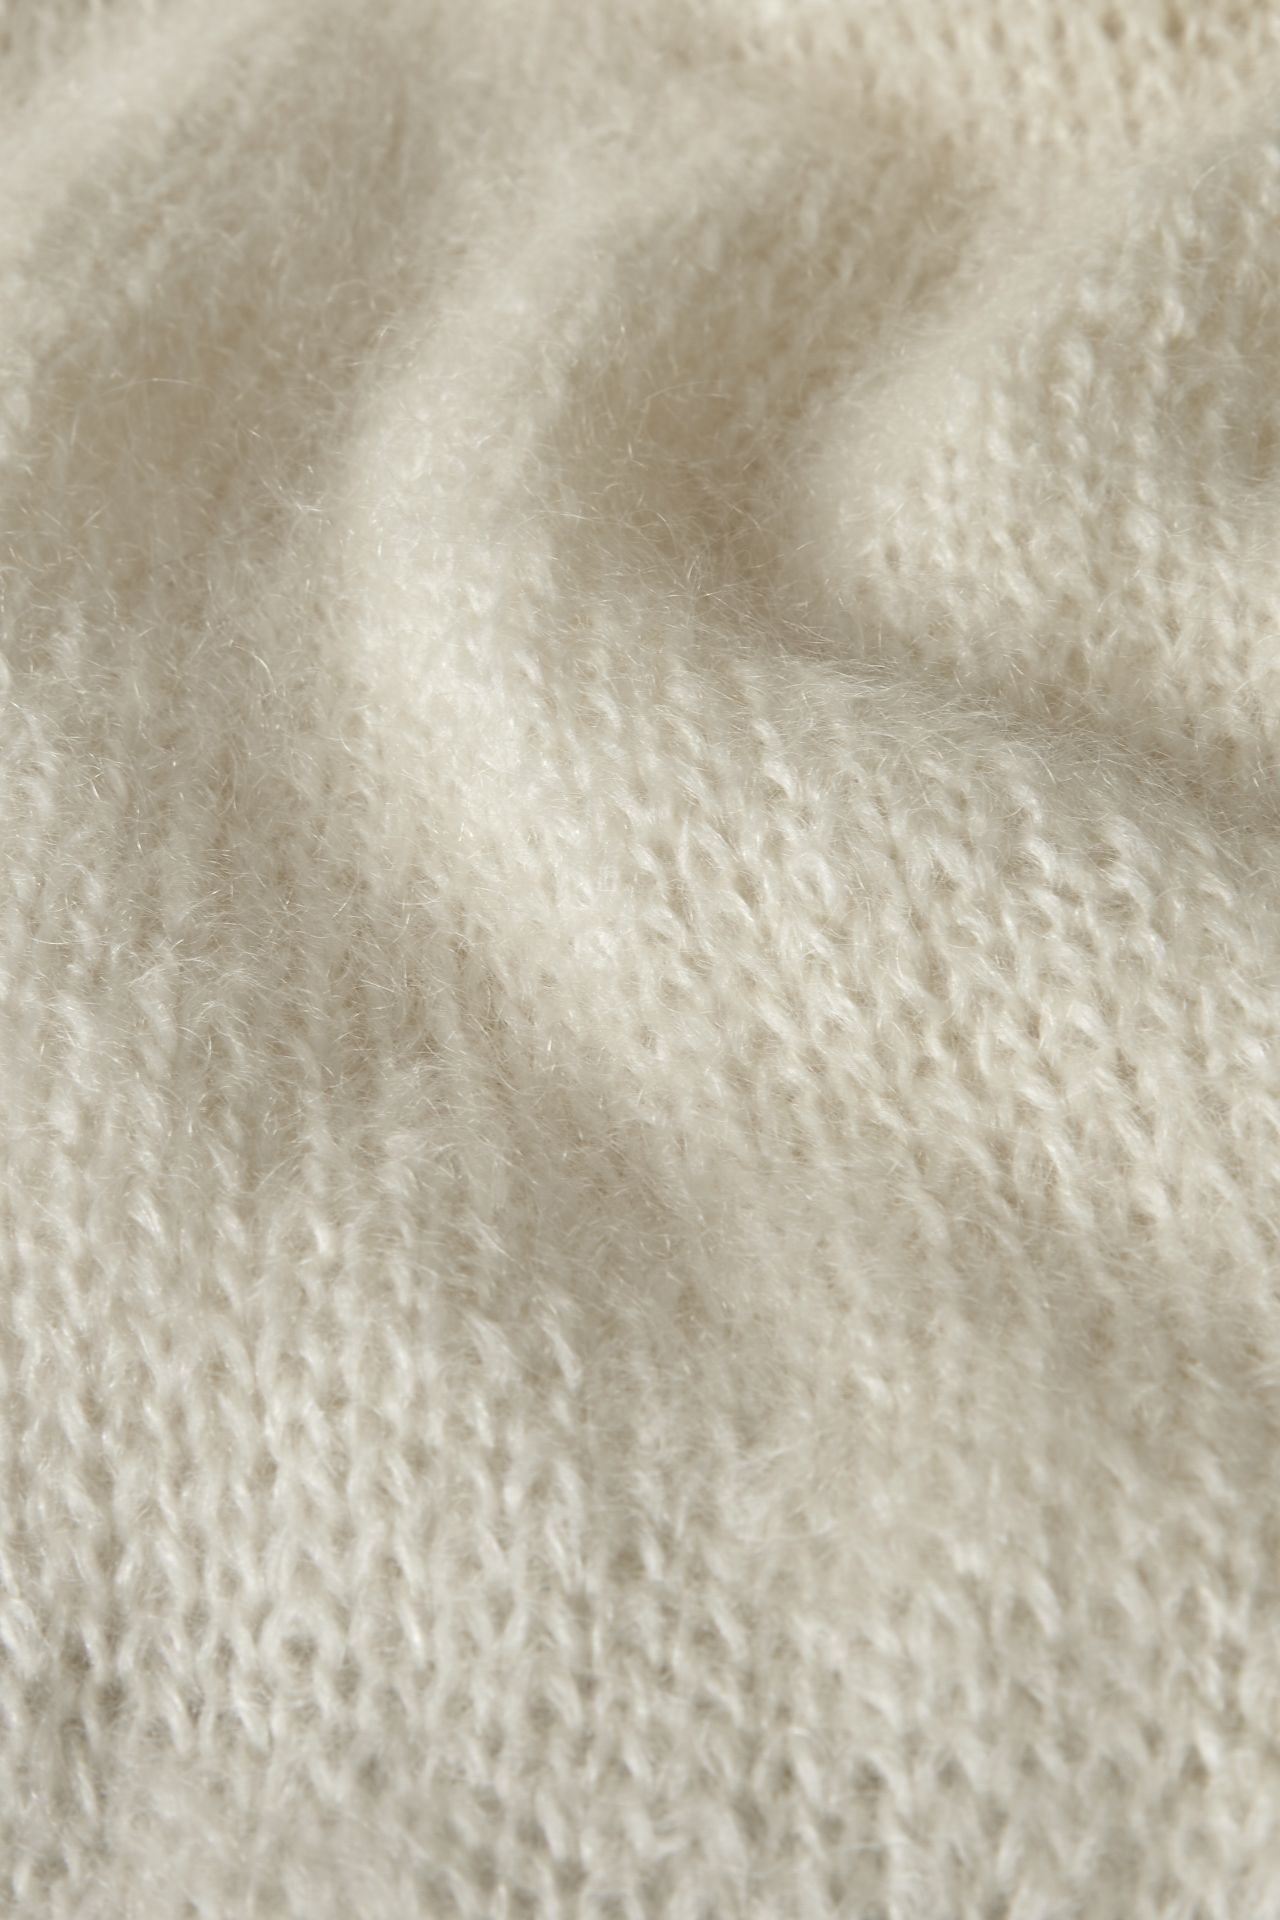 Mohair off-white detail knit.